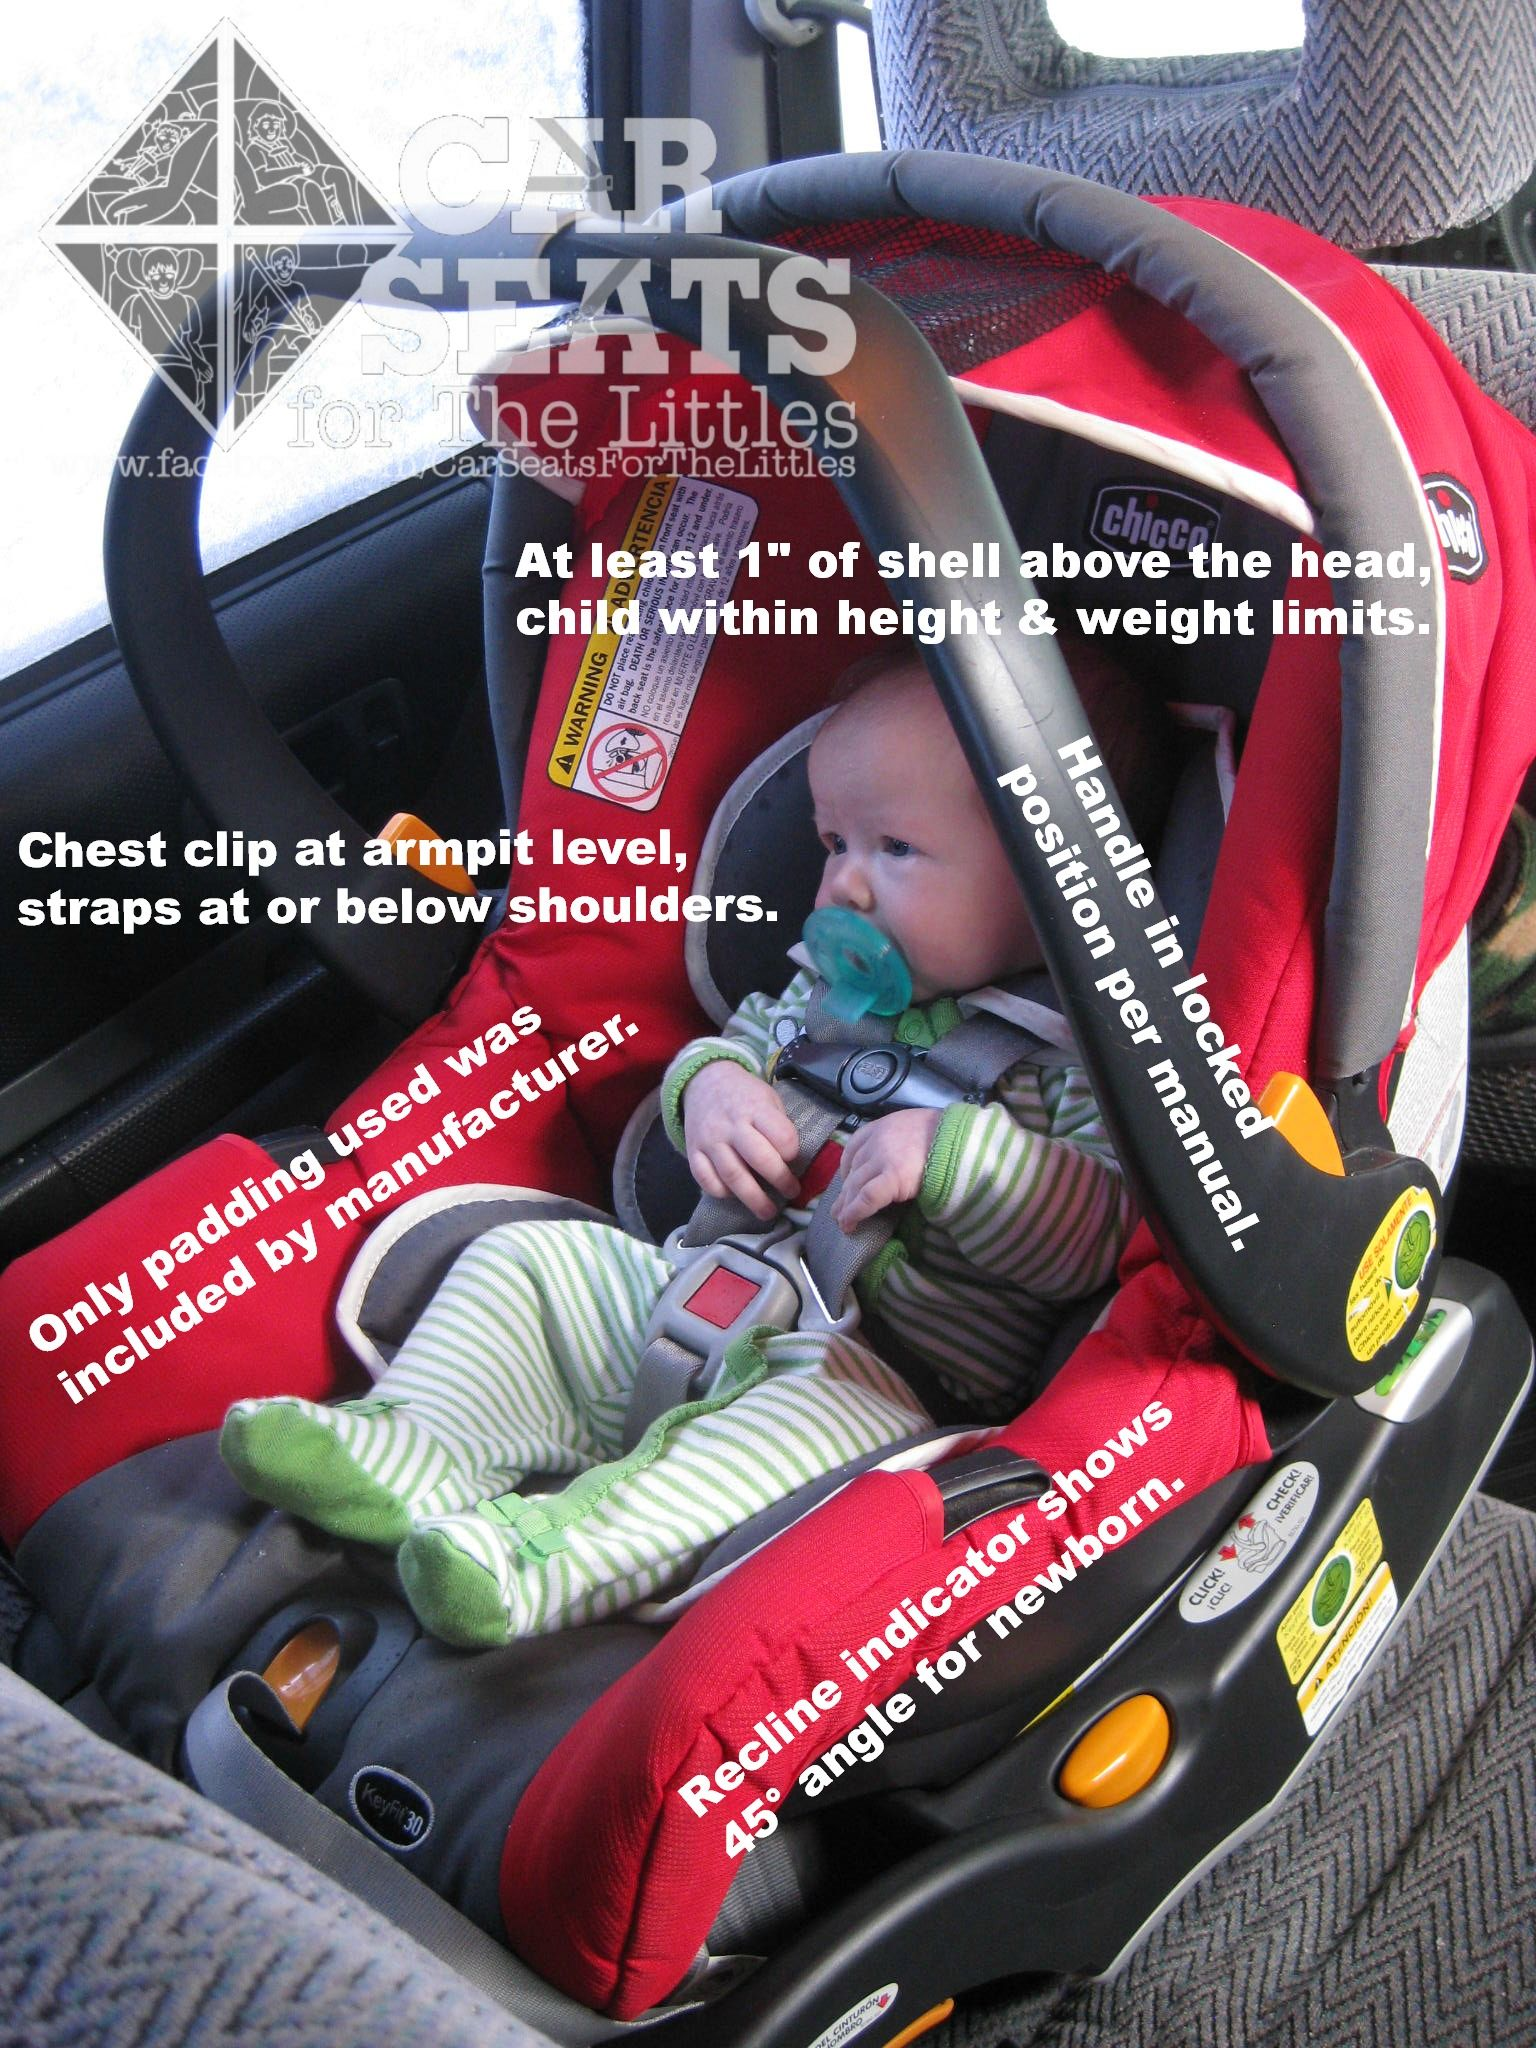 Rear facing infant car seat safety! Awfully